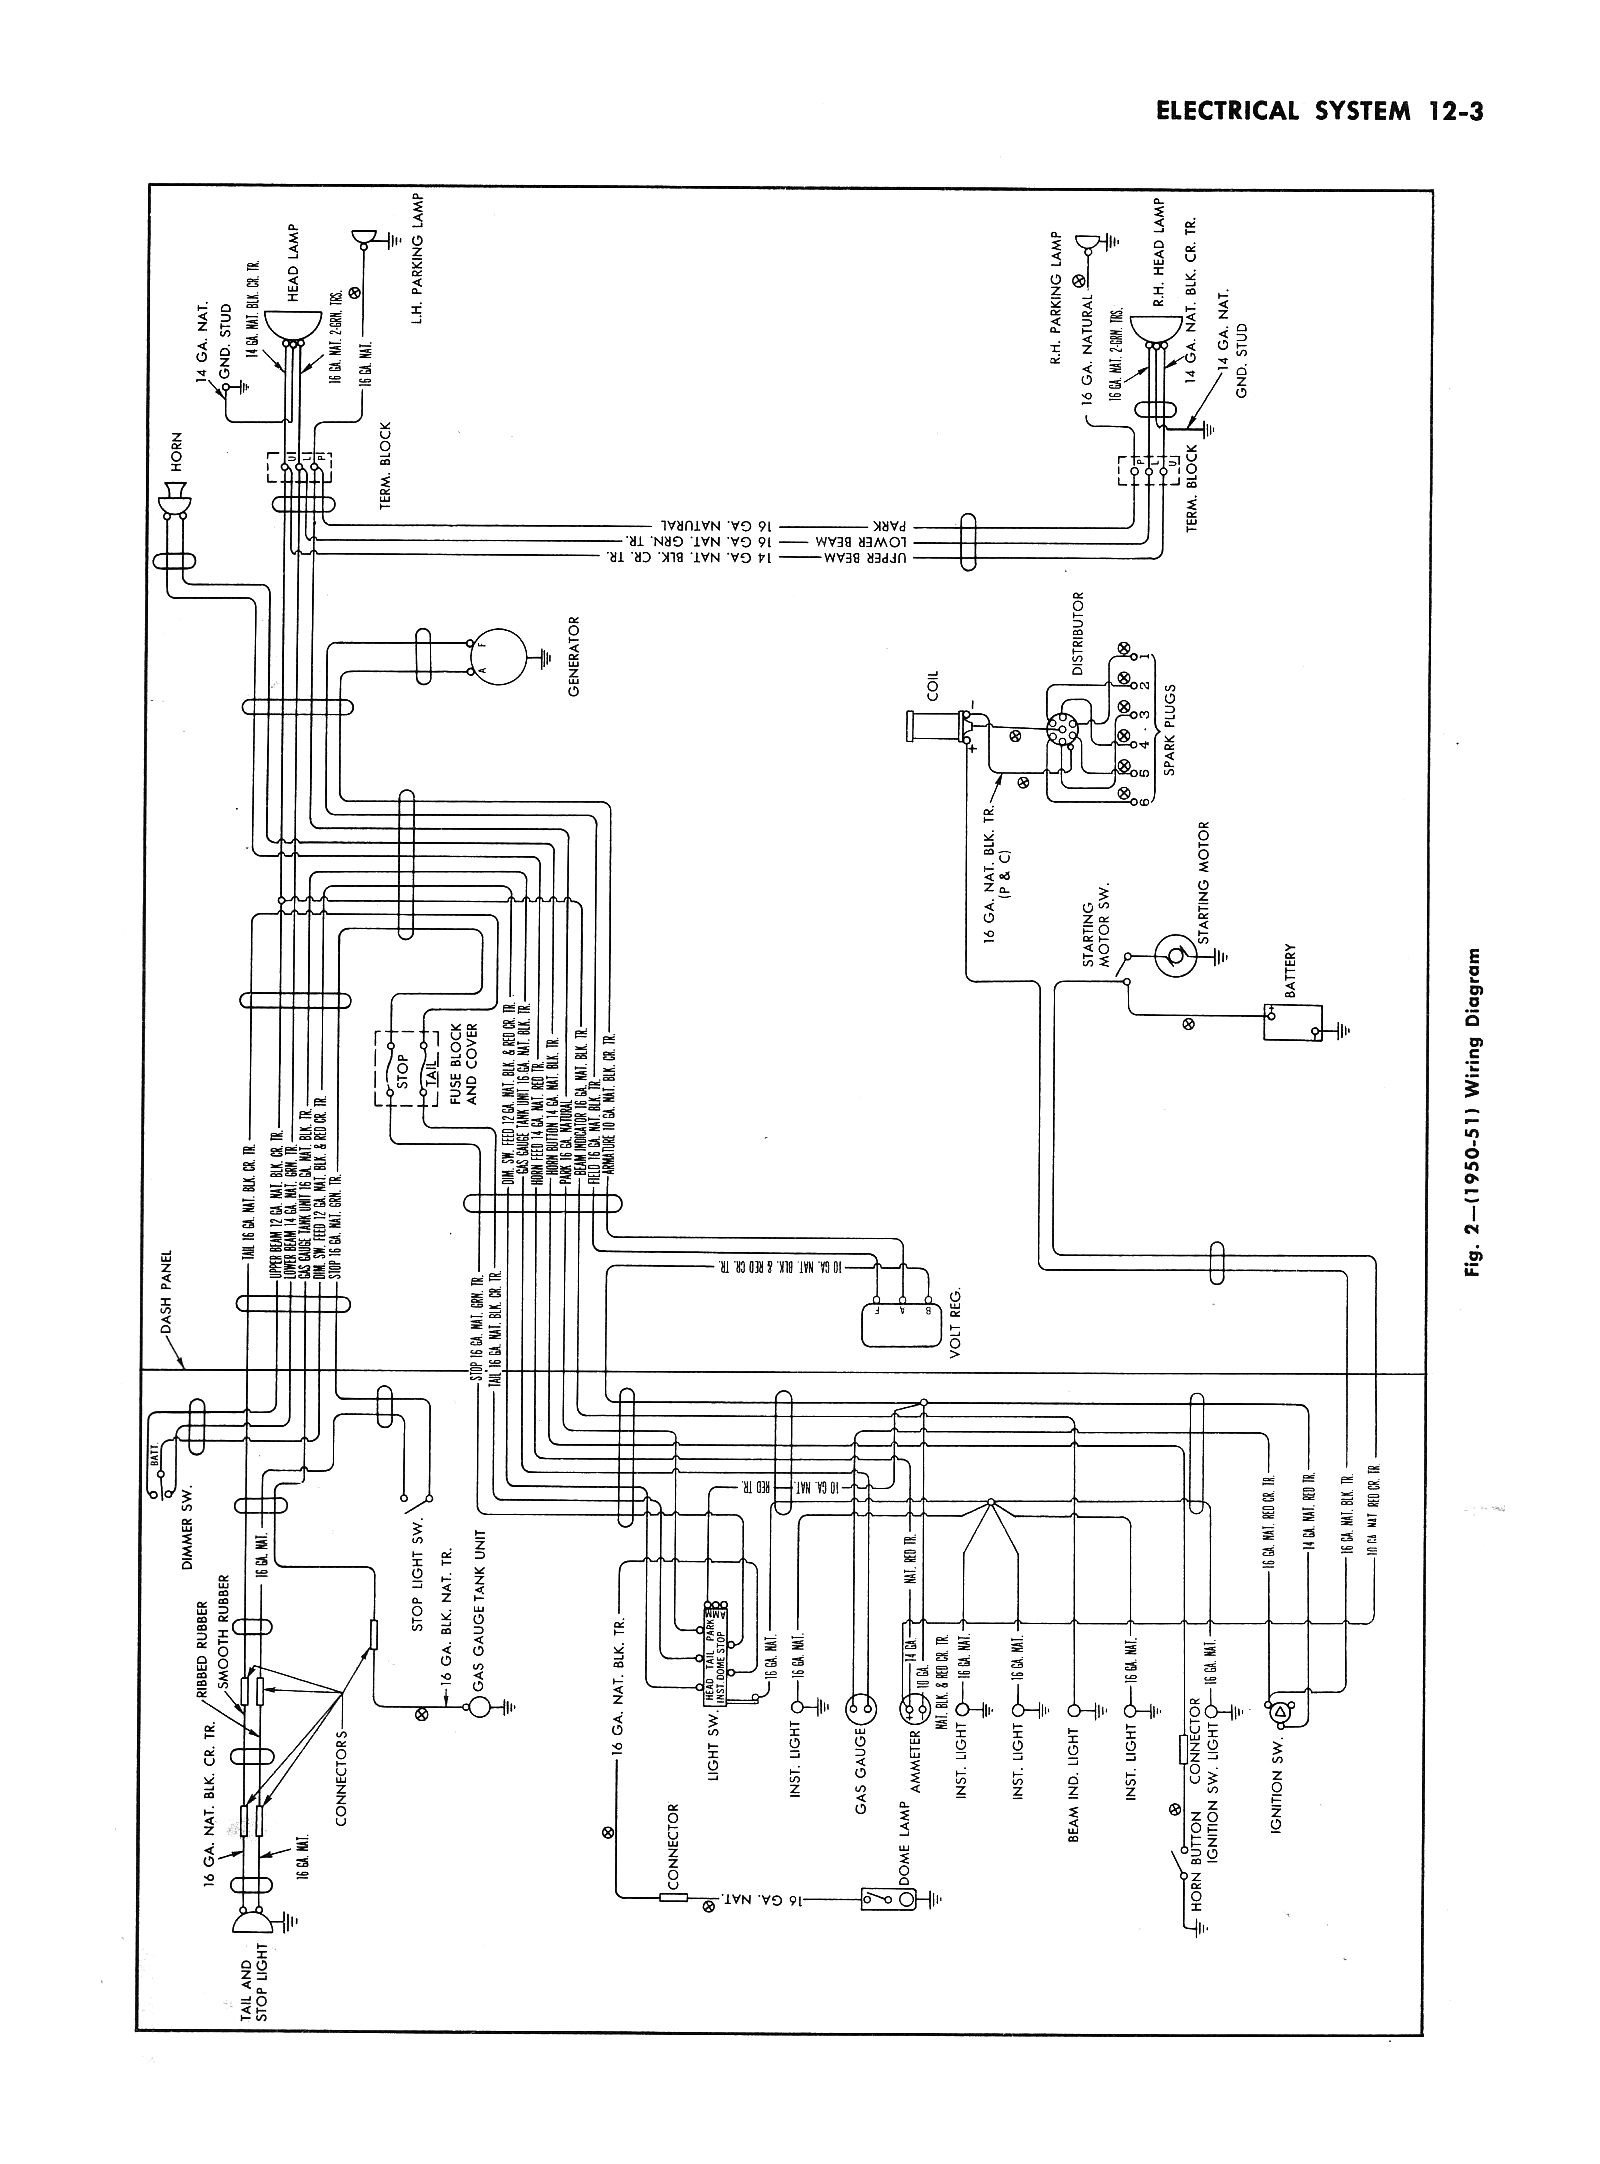 chevy wiring diagrams rh chevy oldcarmanualproject com chevy truck wiring diagram download chevy truck wiring parts